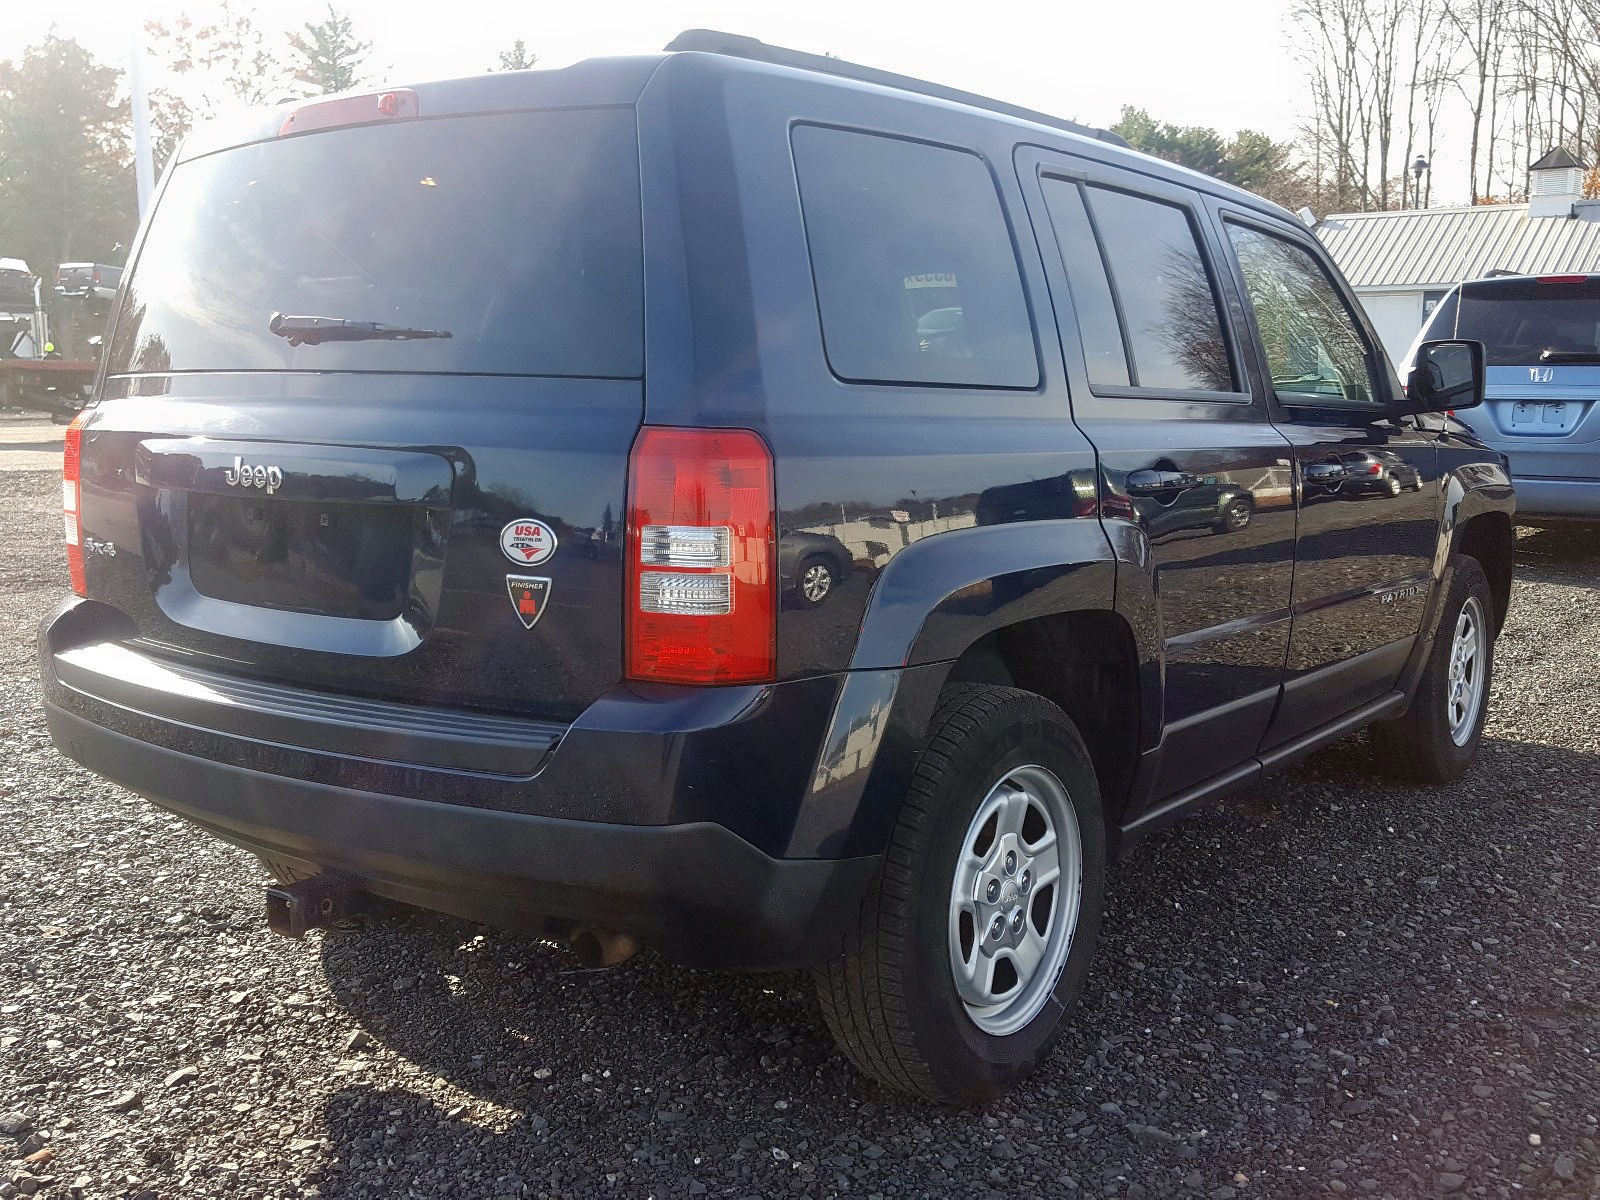 2015 Jeep Patriot Sp 2.4L rear view